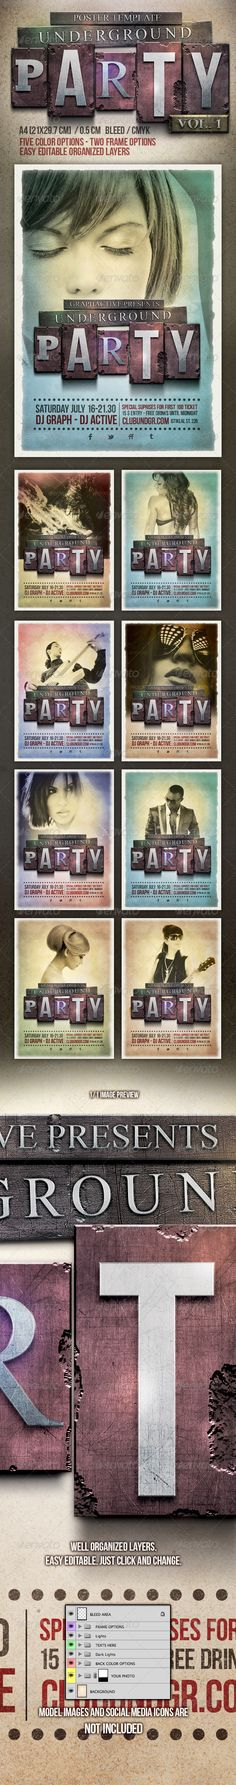 Underground Party Poster Design Template  #gig #grunge #indie • Click here to download ! http://graphicriver.net/item/underground-party-poster-design-template/2413940?s_rank=478&ref=pxcr